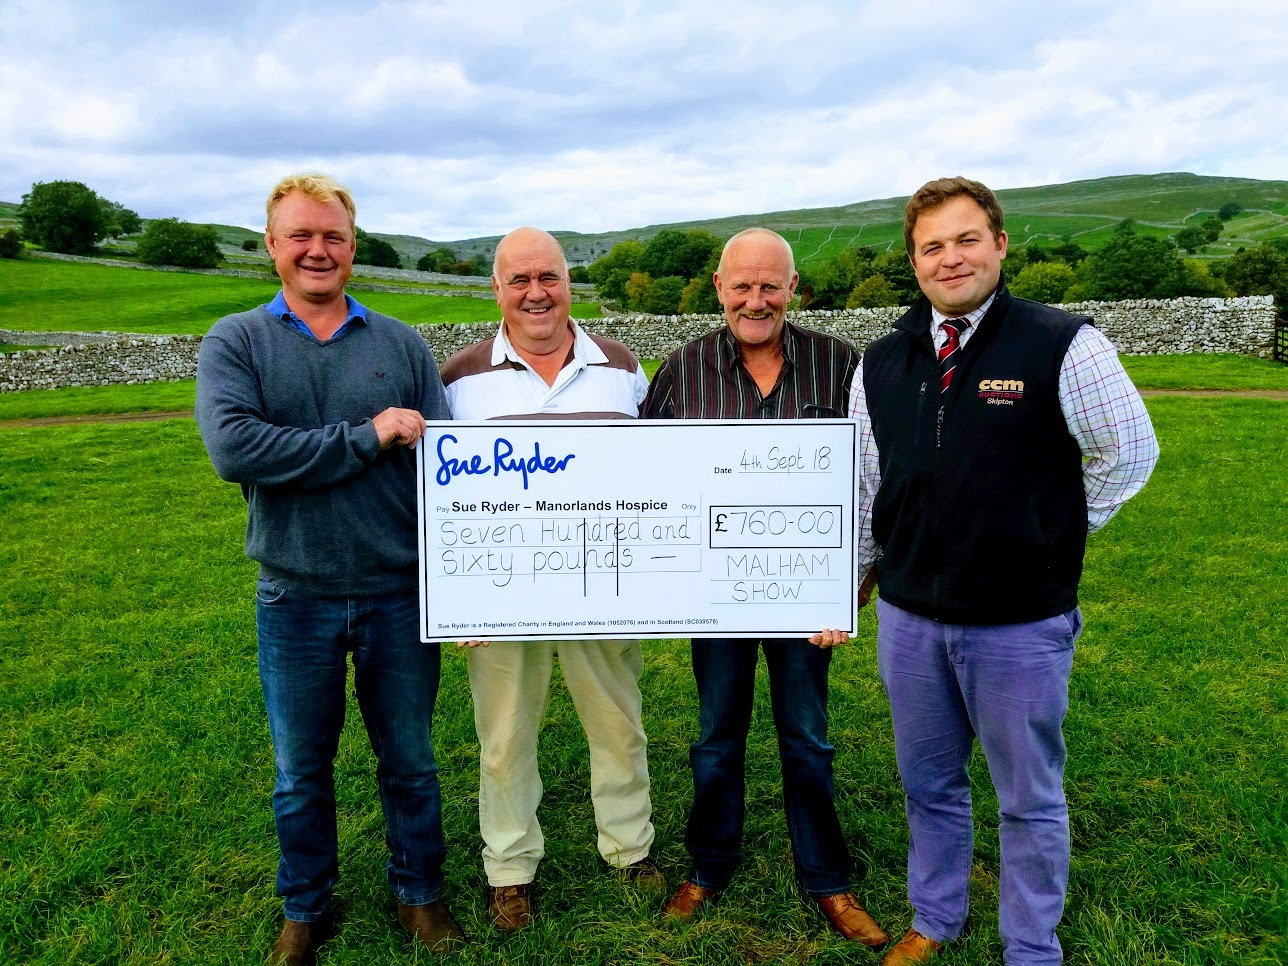 From left: Phil Hargreaves, Chairman; David Hargreaves, Rodney Wainman and Sam Bradley, from Craven Cattle Marts (CCM)